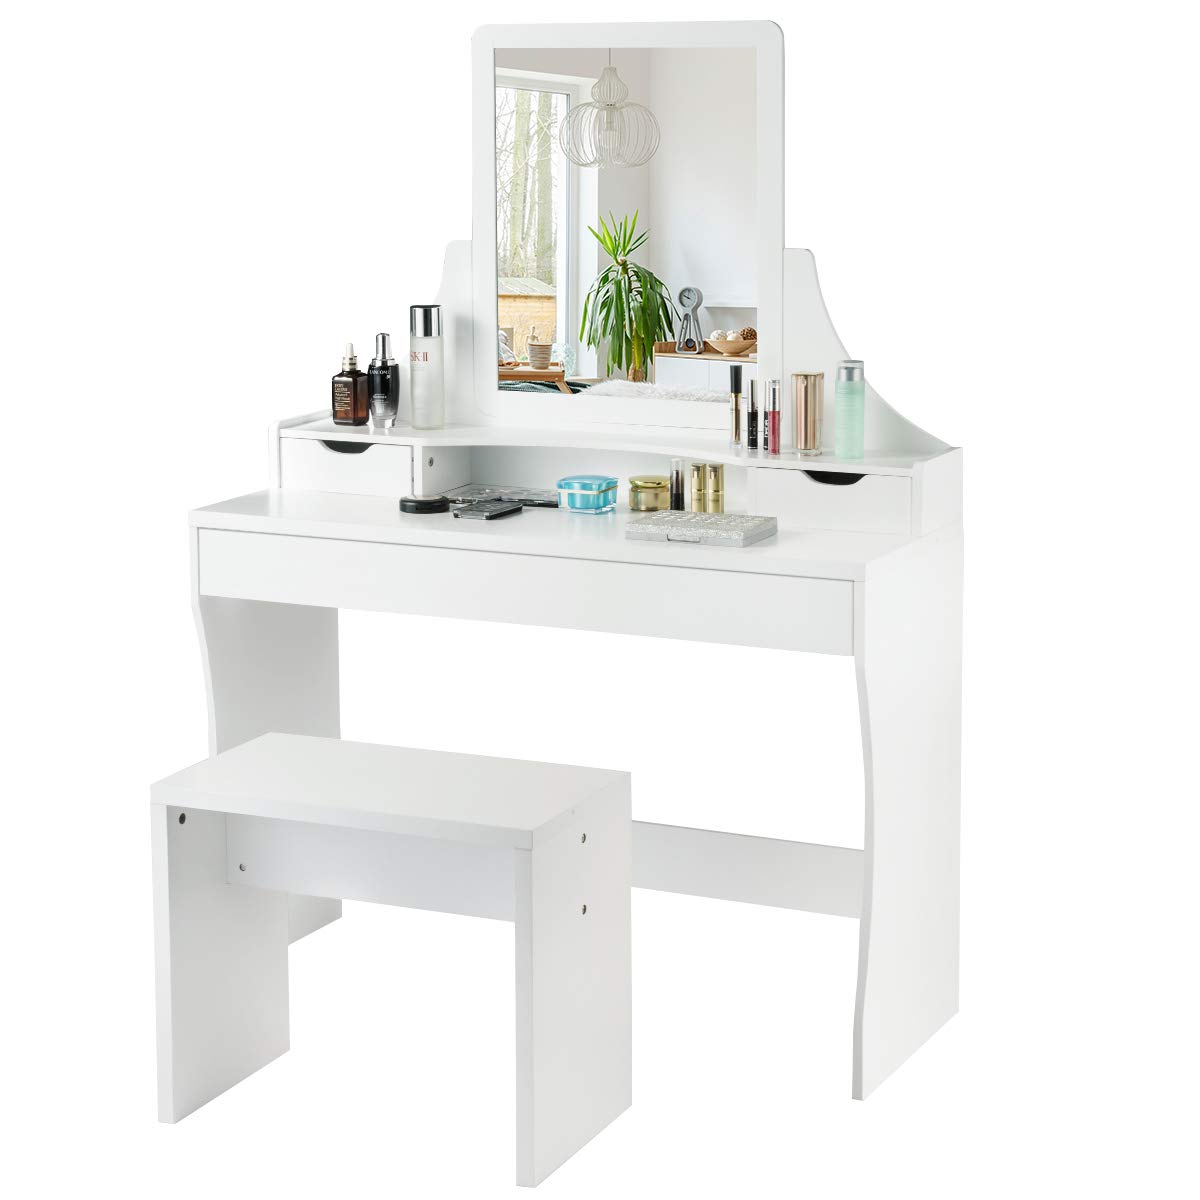 Vanity Set with Mirror & Stool, Makeup Dressing Table with 1 Large Sliding Drawer & 2 Small Drawers, for Girls Women Bedroom (White)